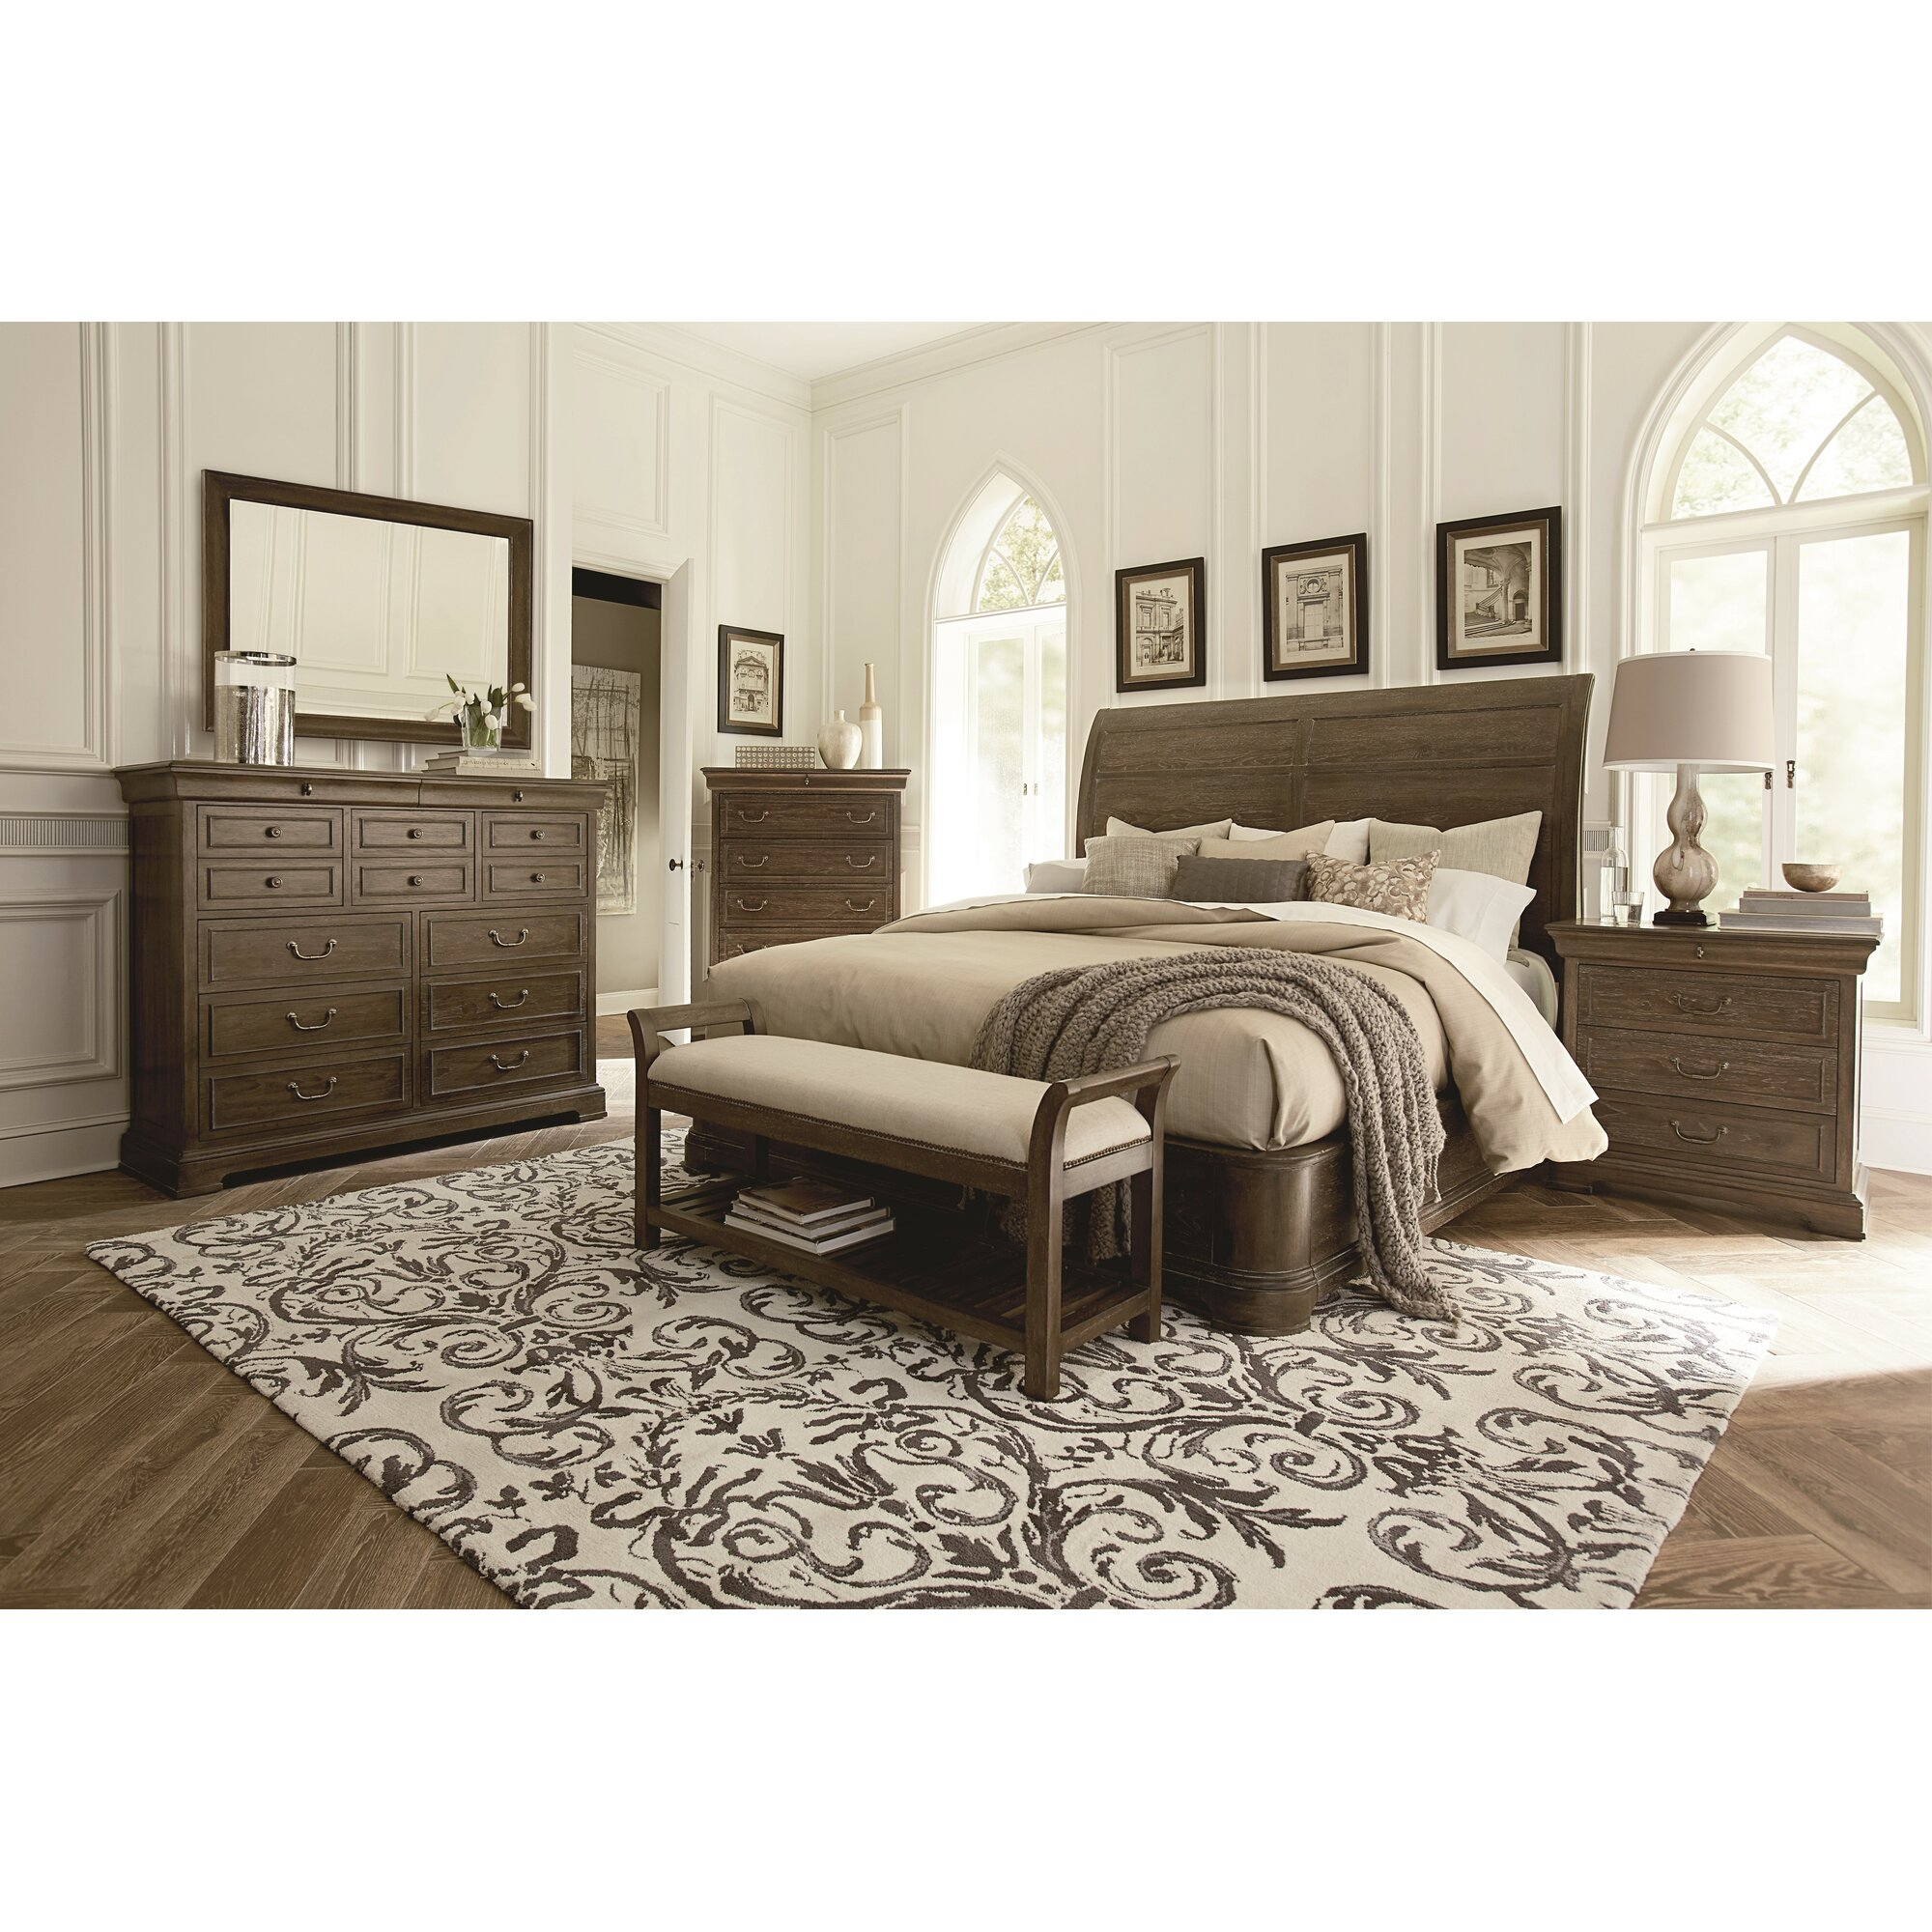 St Germain Platform Customizable Bedroom Set